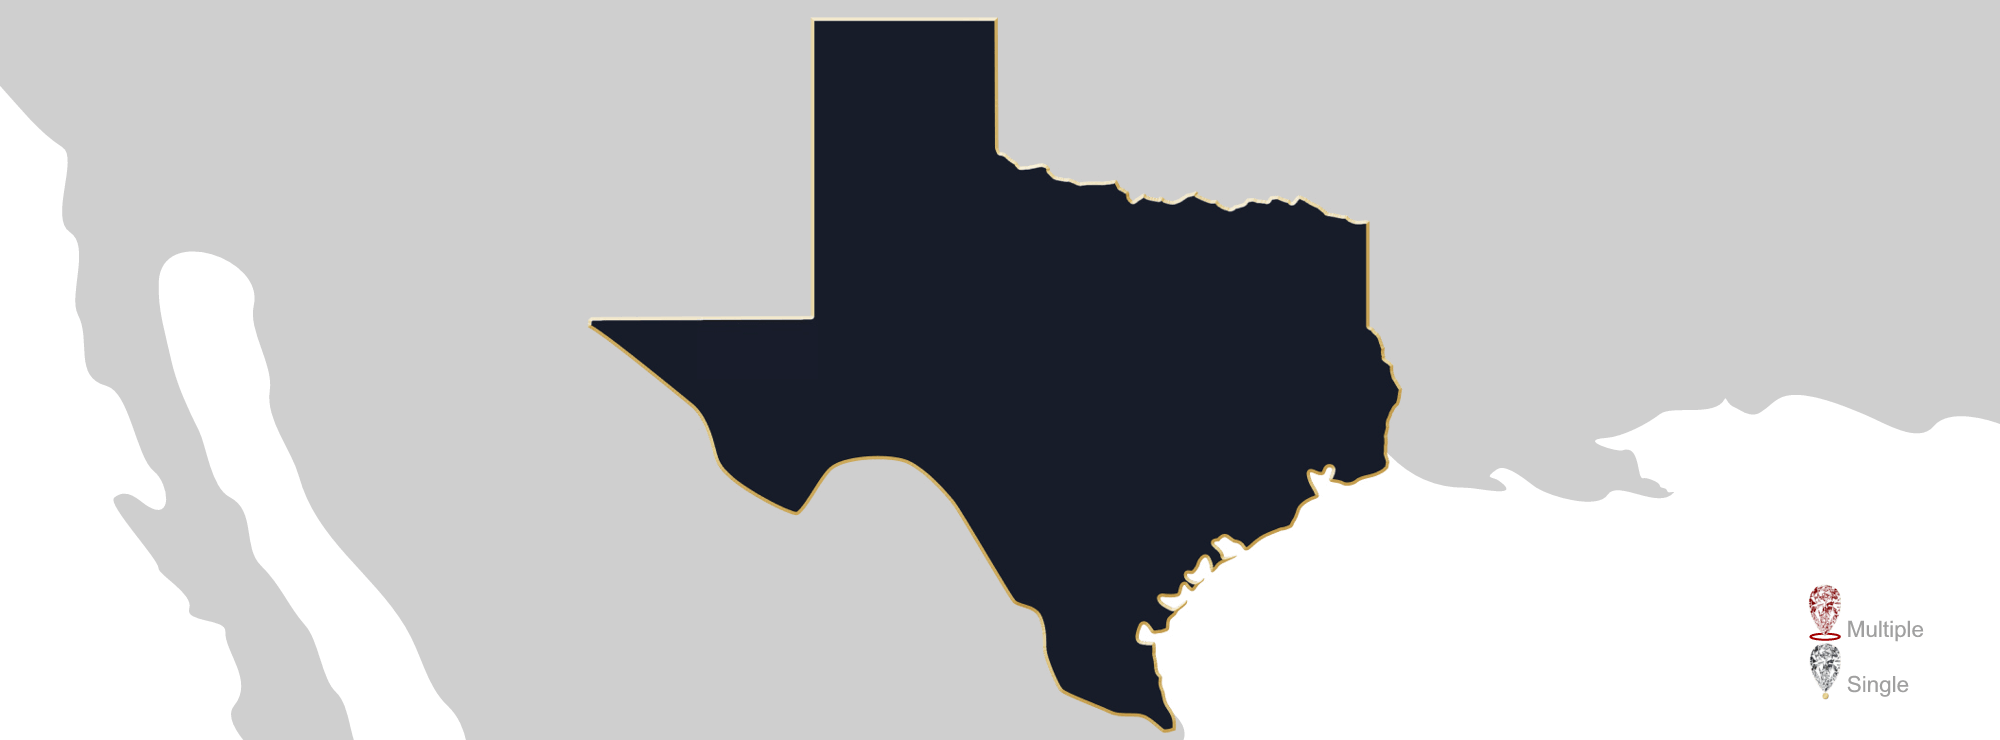 Map showing location of Jewelry Appraisers in Texas